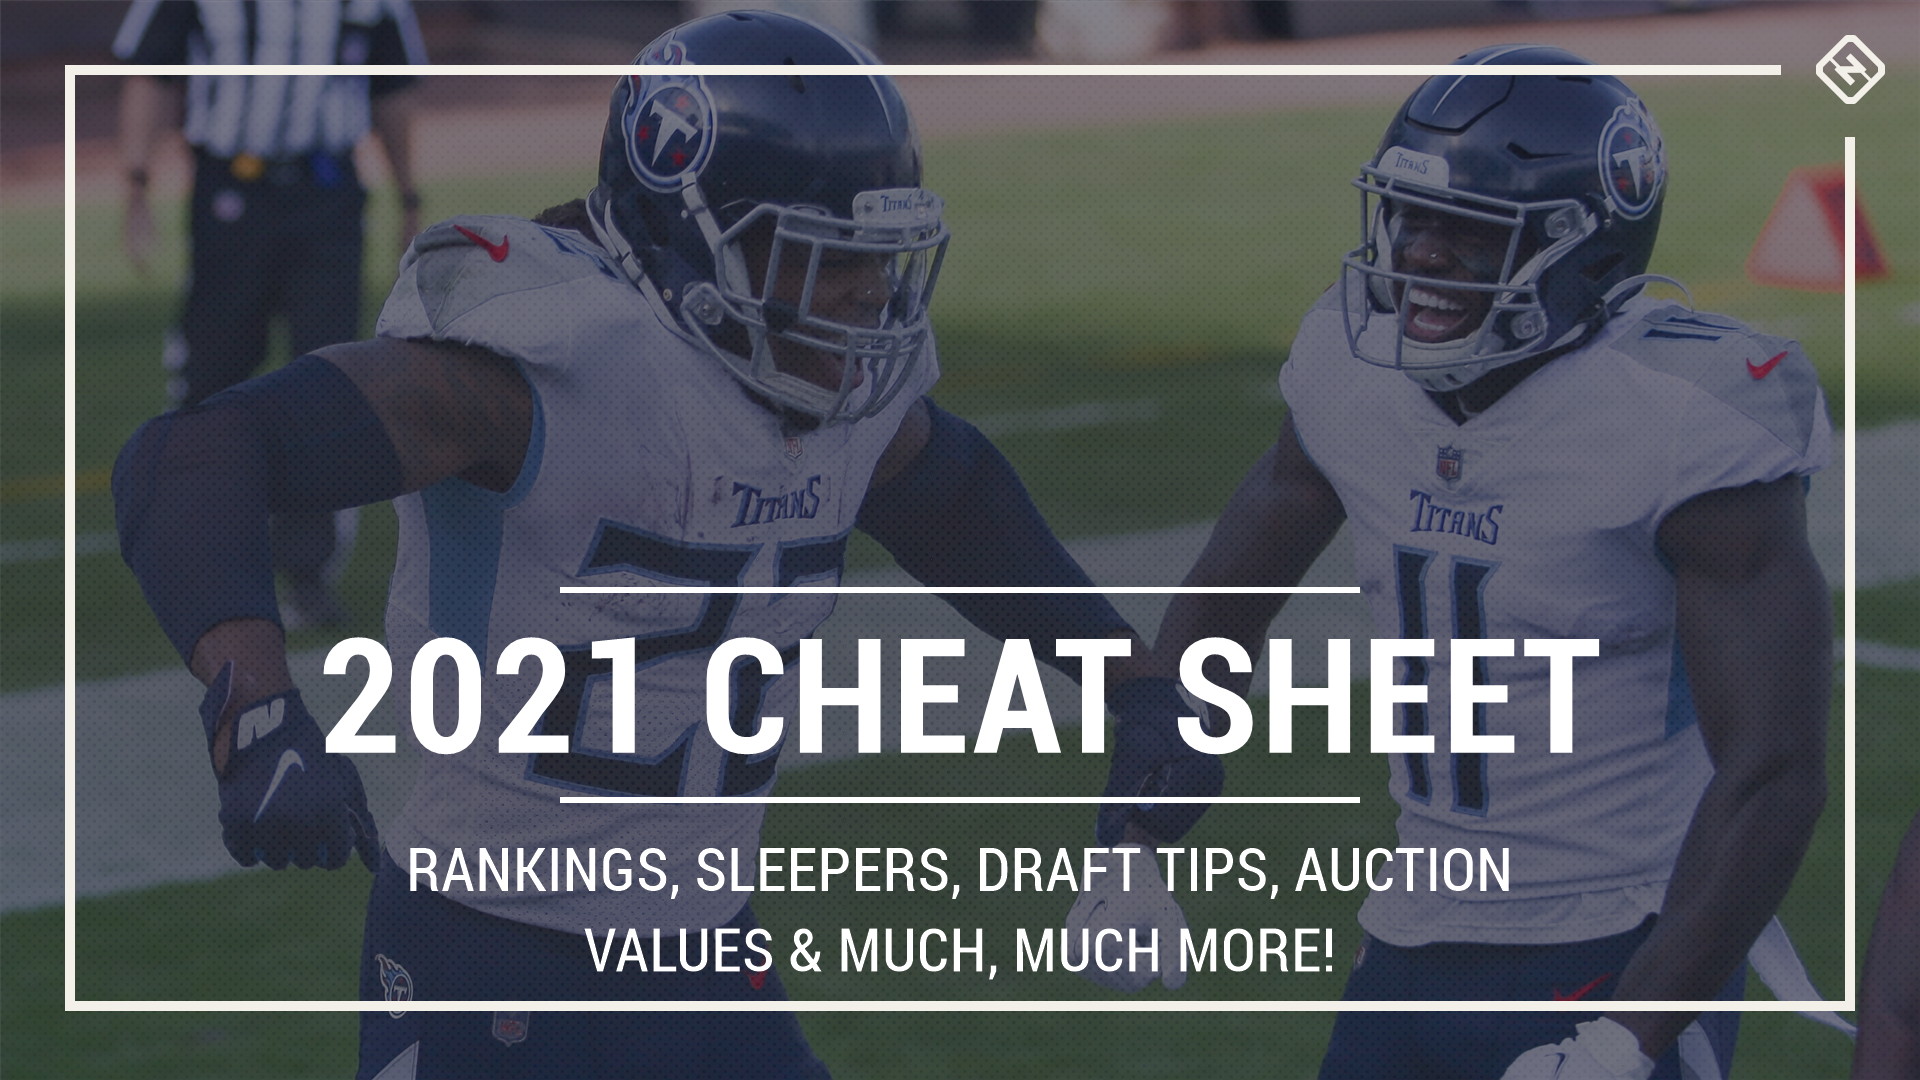 Fantasy Football 2021 Cheat Sheet, Rankings, Projections, Auction Values, Sleepers, Team Names, Draft Tips